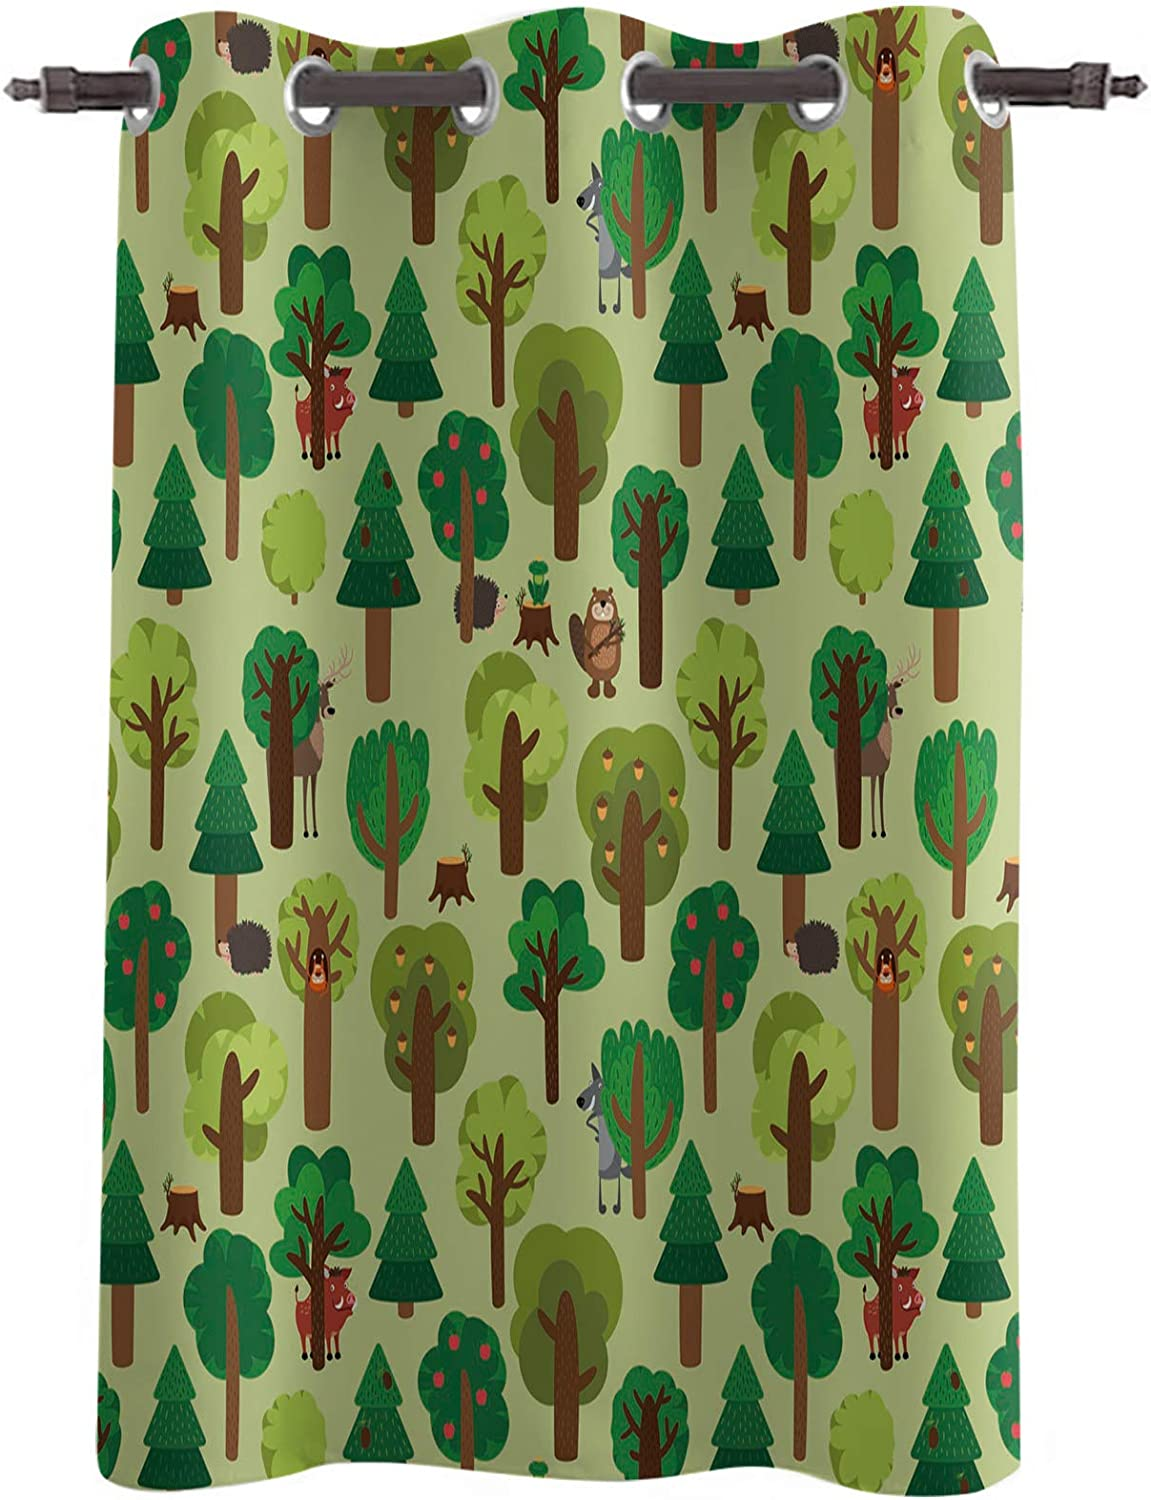 Forest 1 Panel Blackout Drapes Insulated Thermal Colorado Springs Mall Curtain 2021 model Window